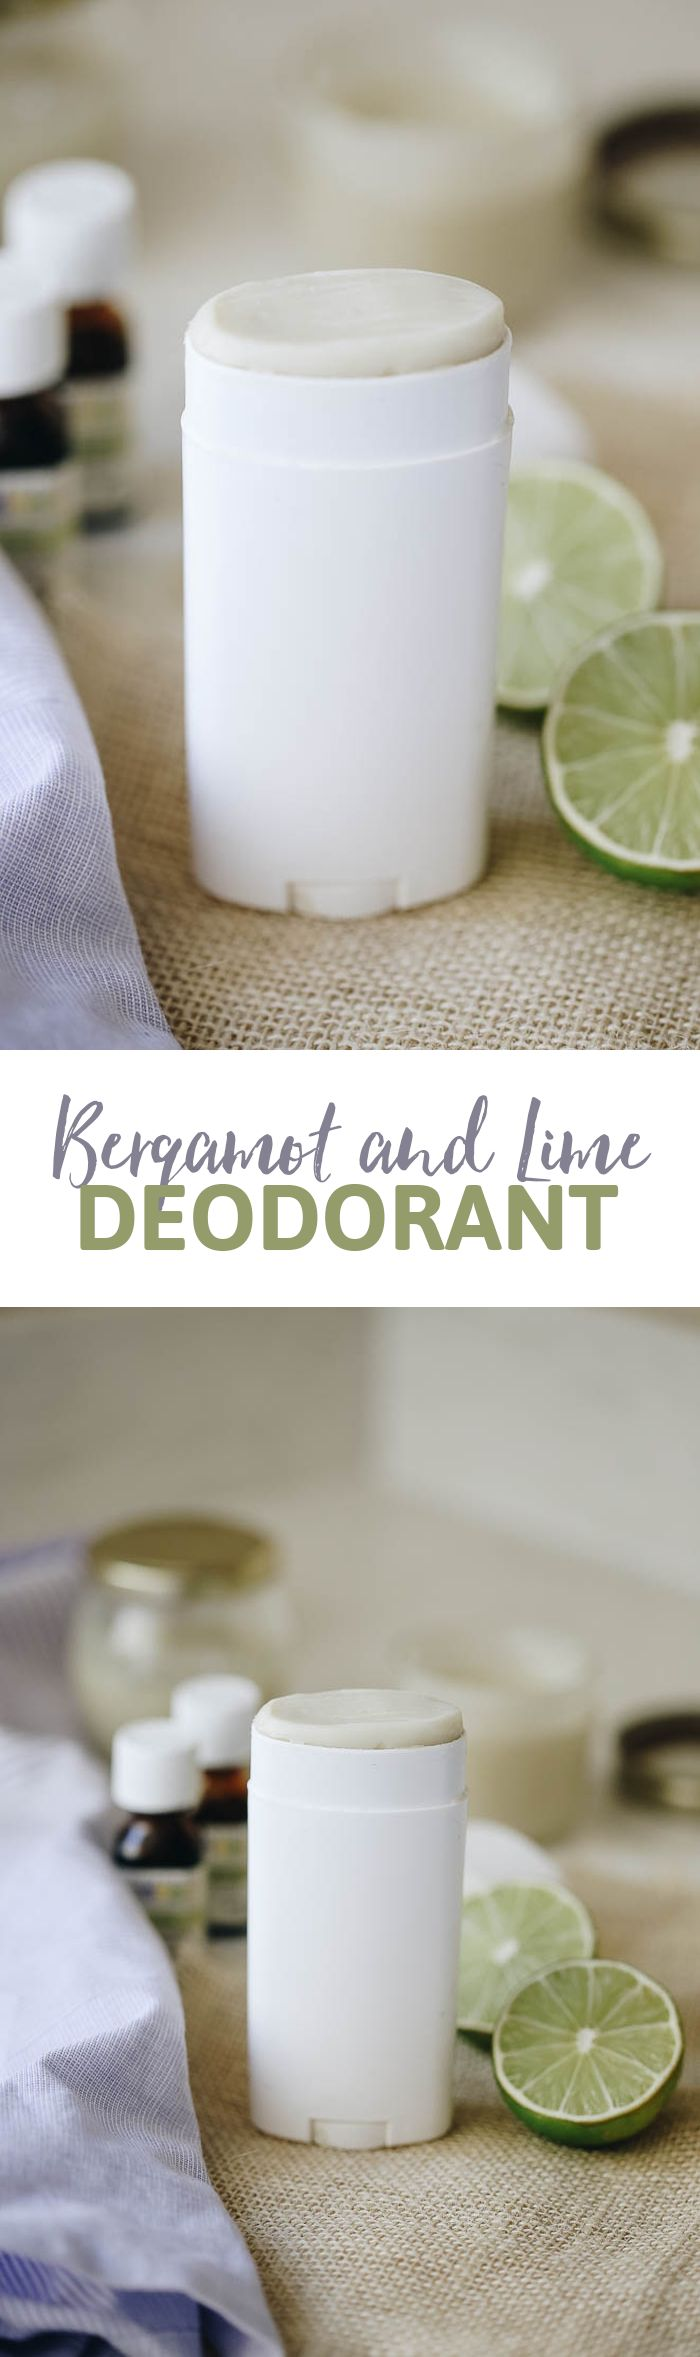 Have you always wanted to try making your own natural deodorant but have been scared to try it out? This DIY recipe for Bergamot and Lime Deodorant is made from non-toxic ingredients, smells amazing a (How To Make Makeup For Kids)